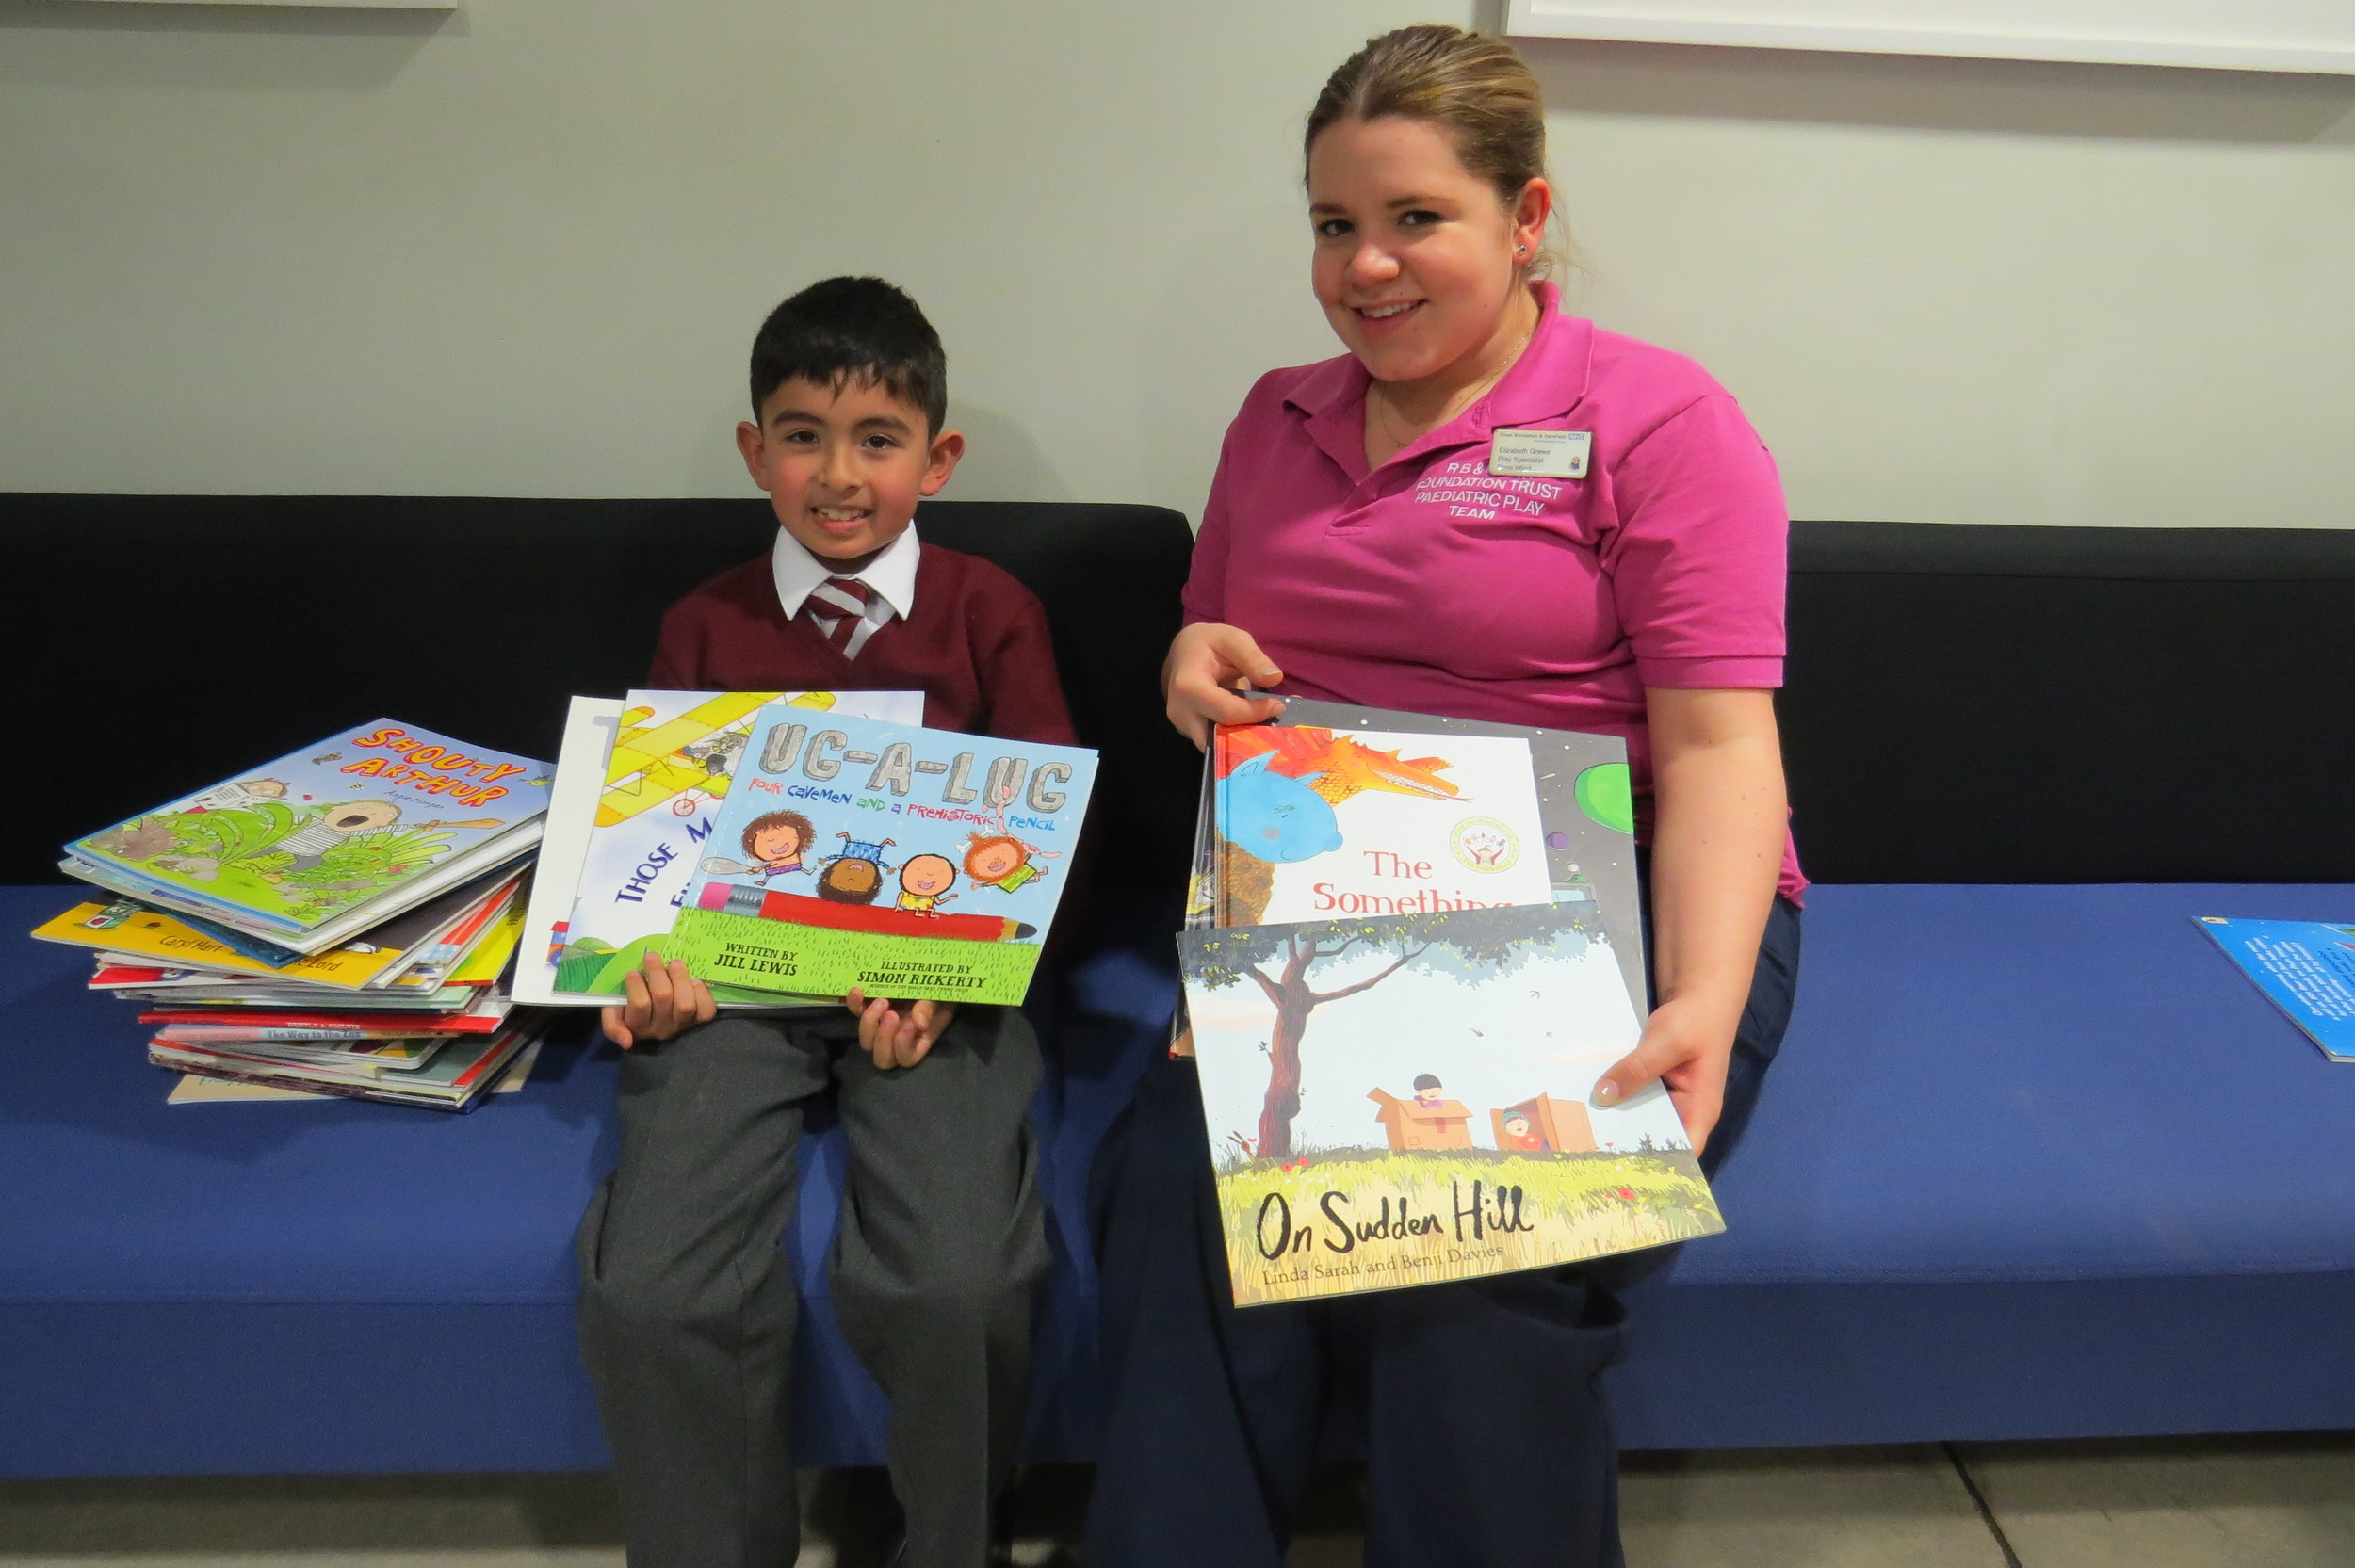 Luis Fafian and Liz Grewe, play therapist at the Royal Brompton Hospital, enjoy exploring the cardiac clinic's new shipment of children's books donated by Oscar's Book Prize.